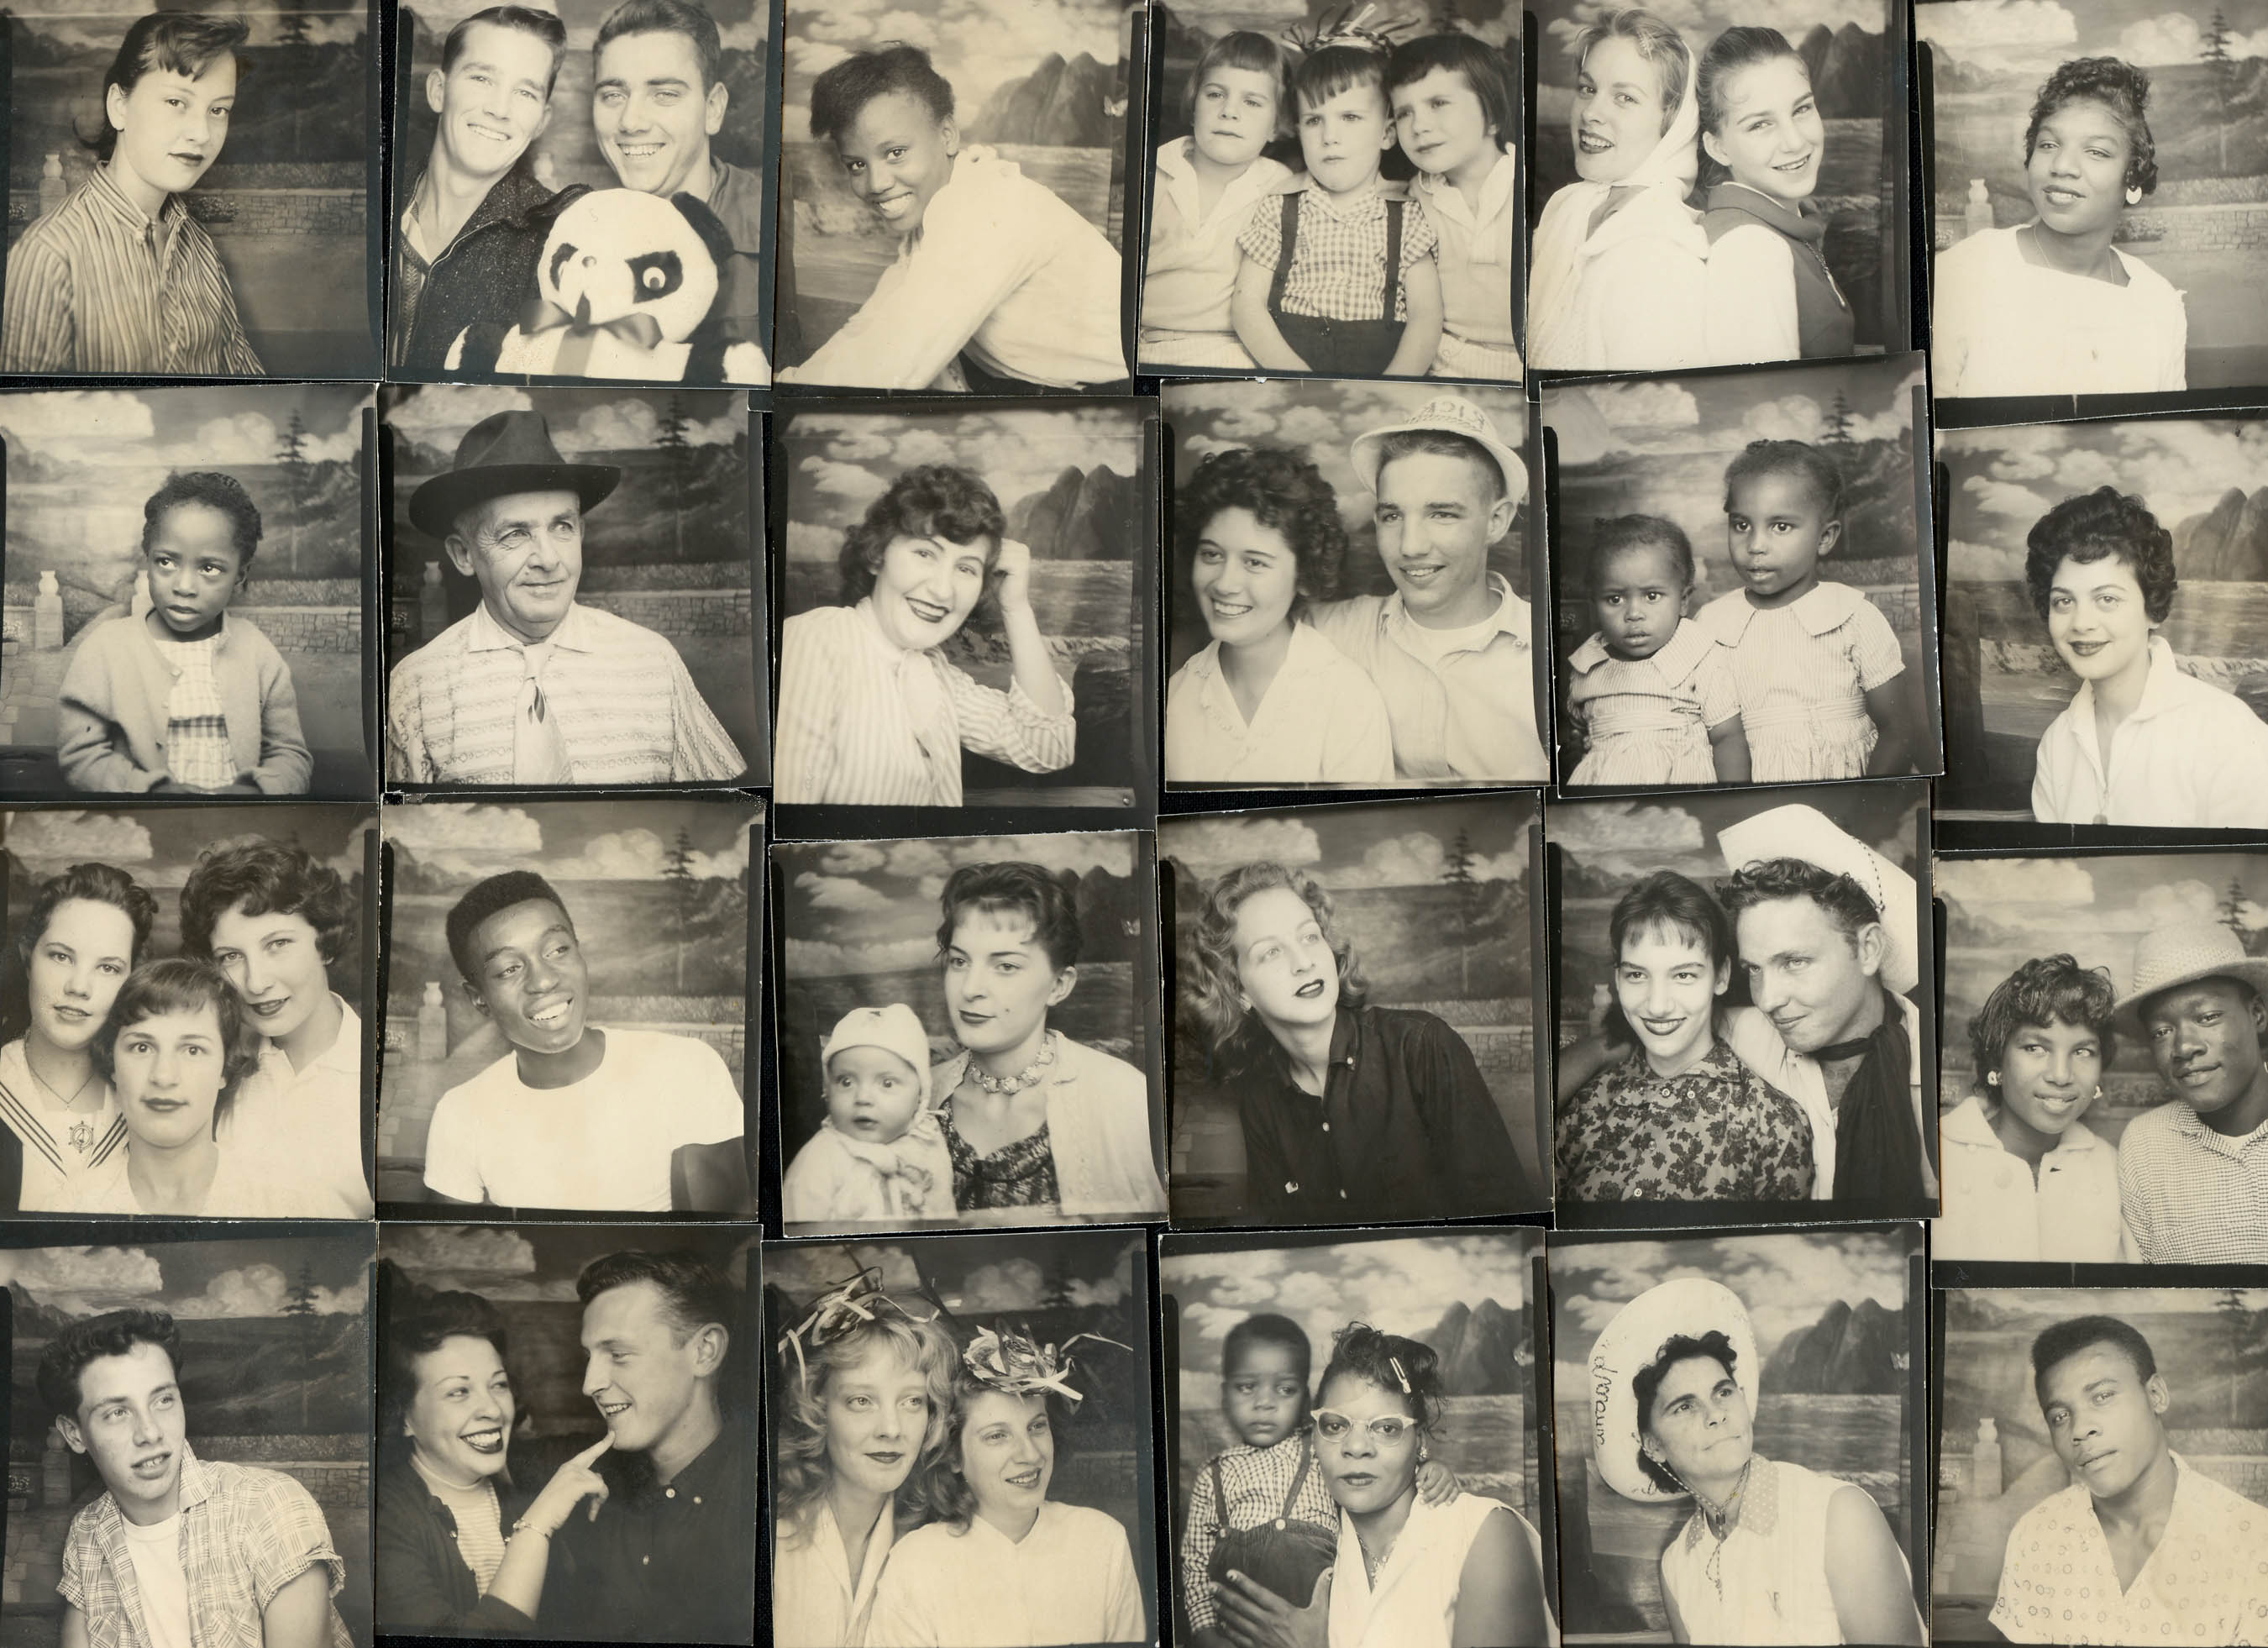 Group of photobooth portraits from traveling photo studio, around 1950-1960. Unknown photographer. Courtesy DIA.